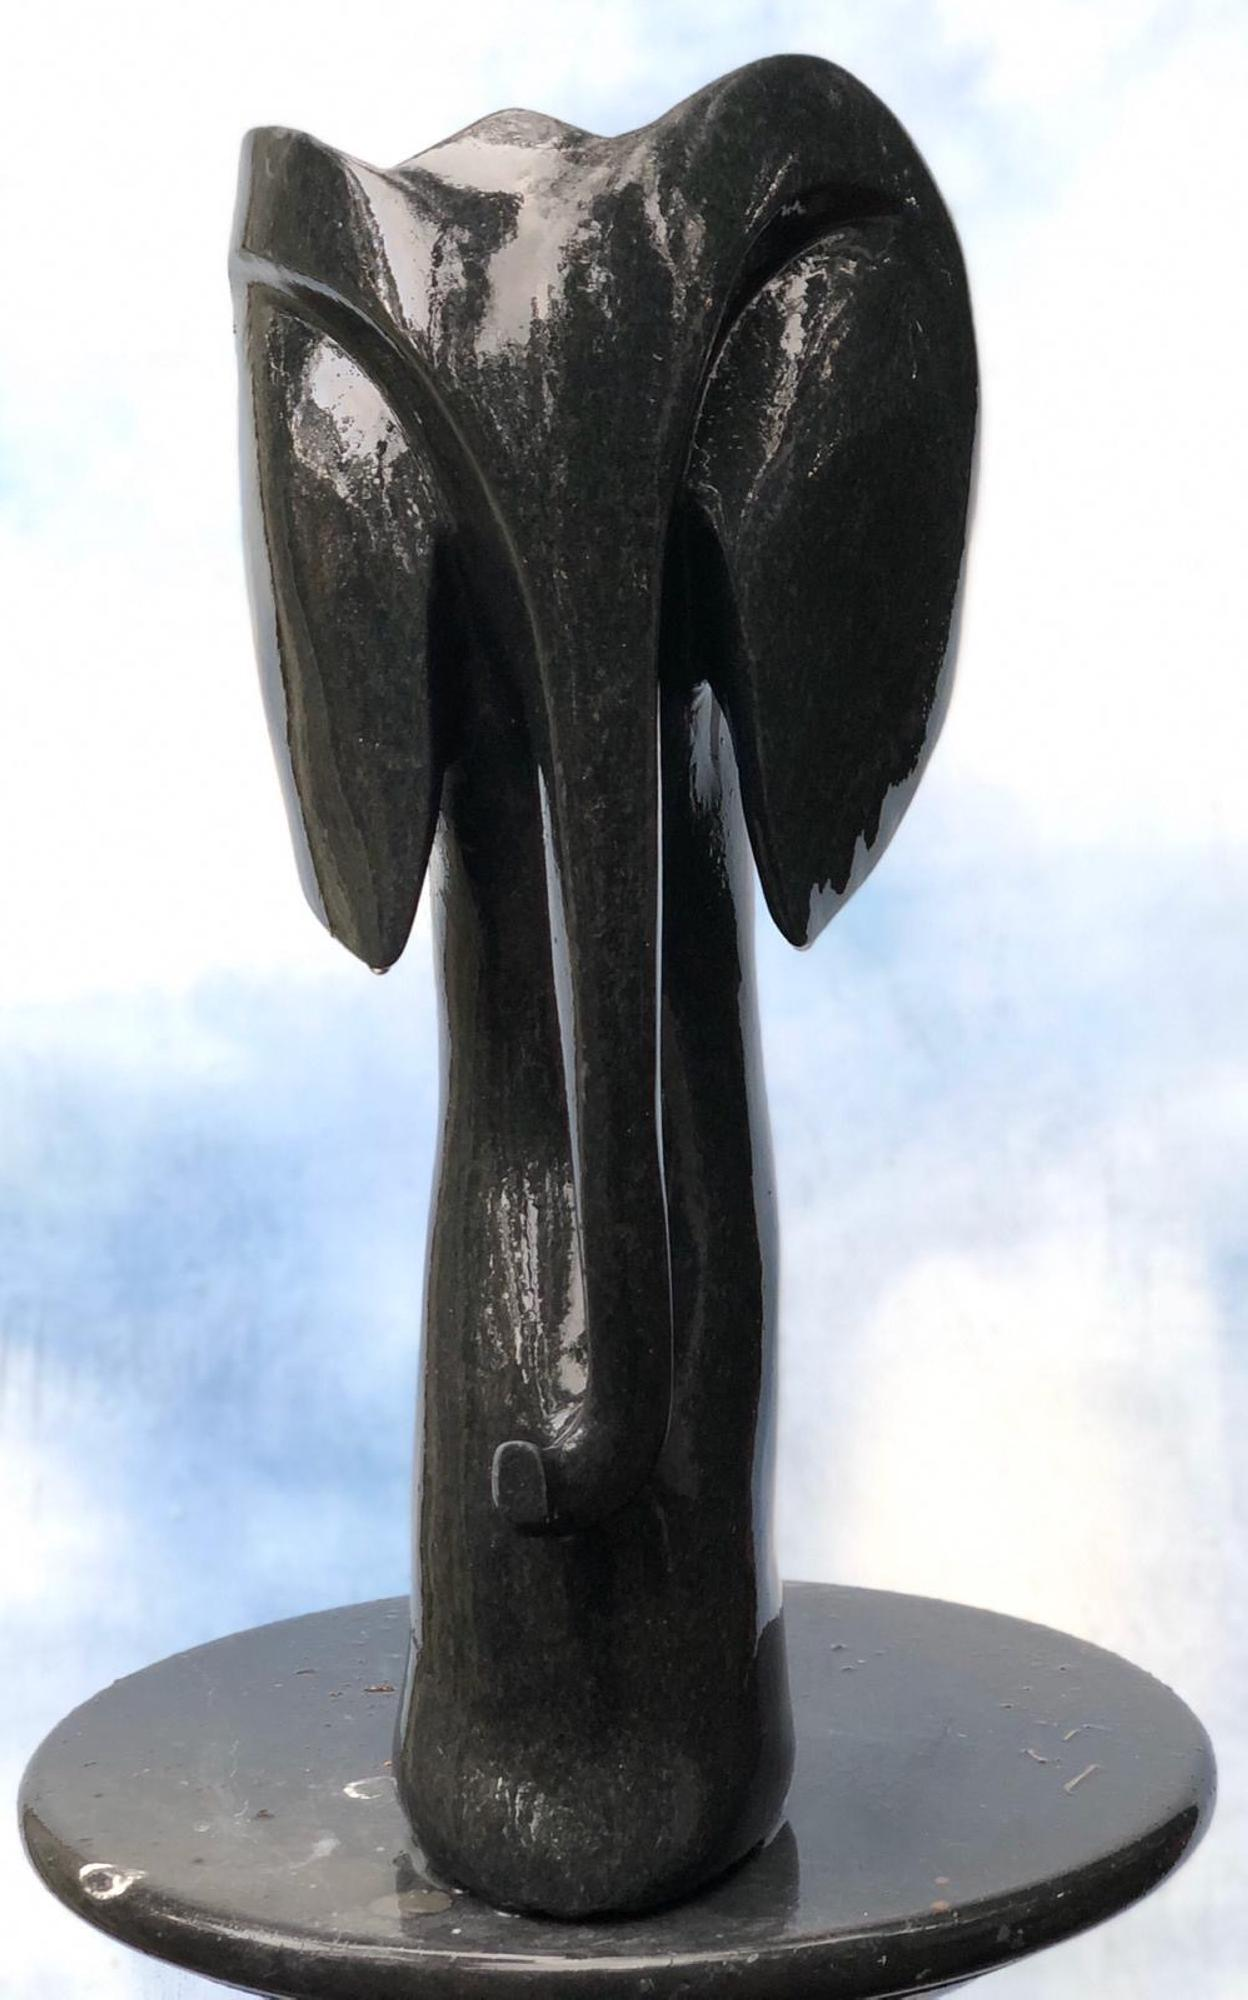 Lot 8 - Sculpture: Andamiyo Chihota, Dancing Elephant, Springstone, Unique, 52cm high by 22cm wide by 22cm